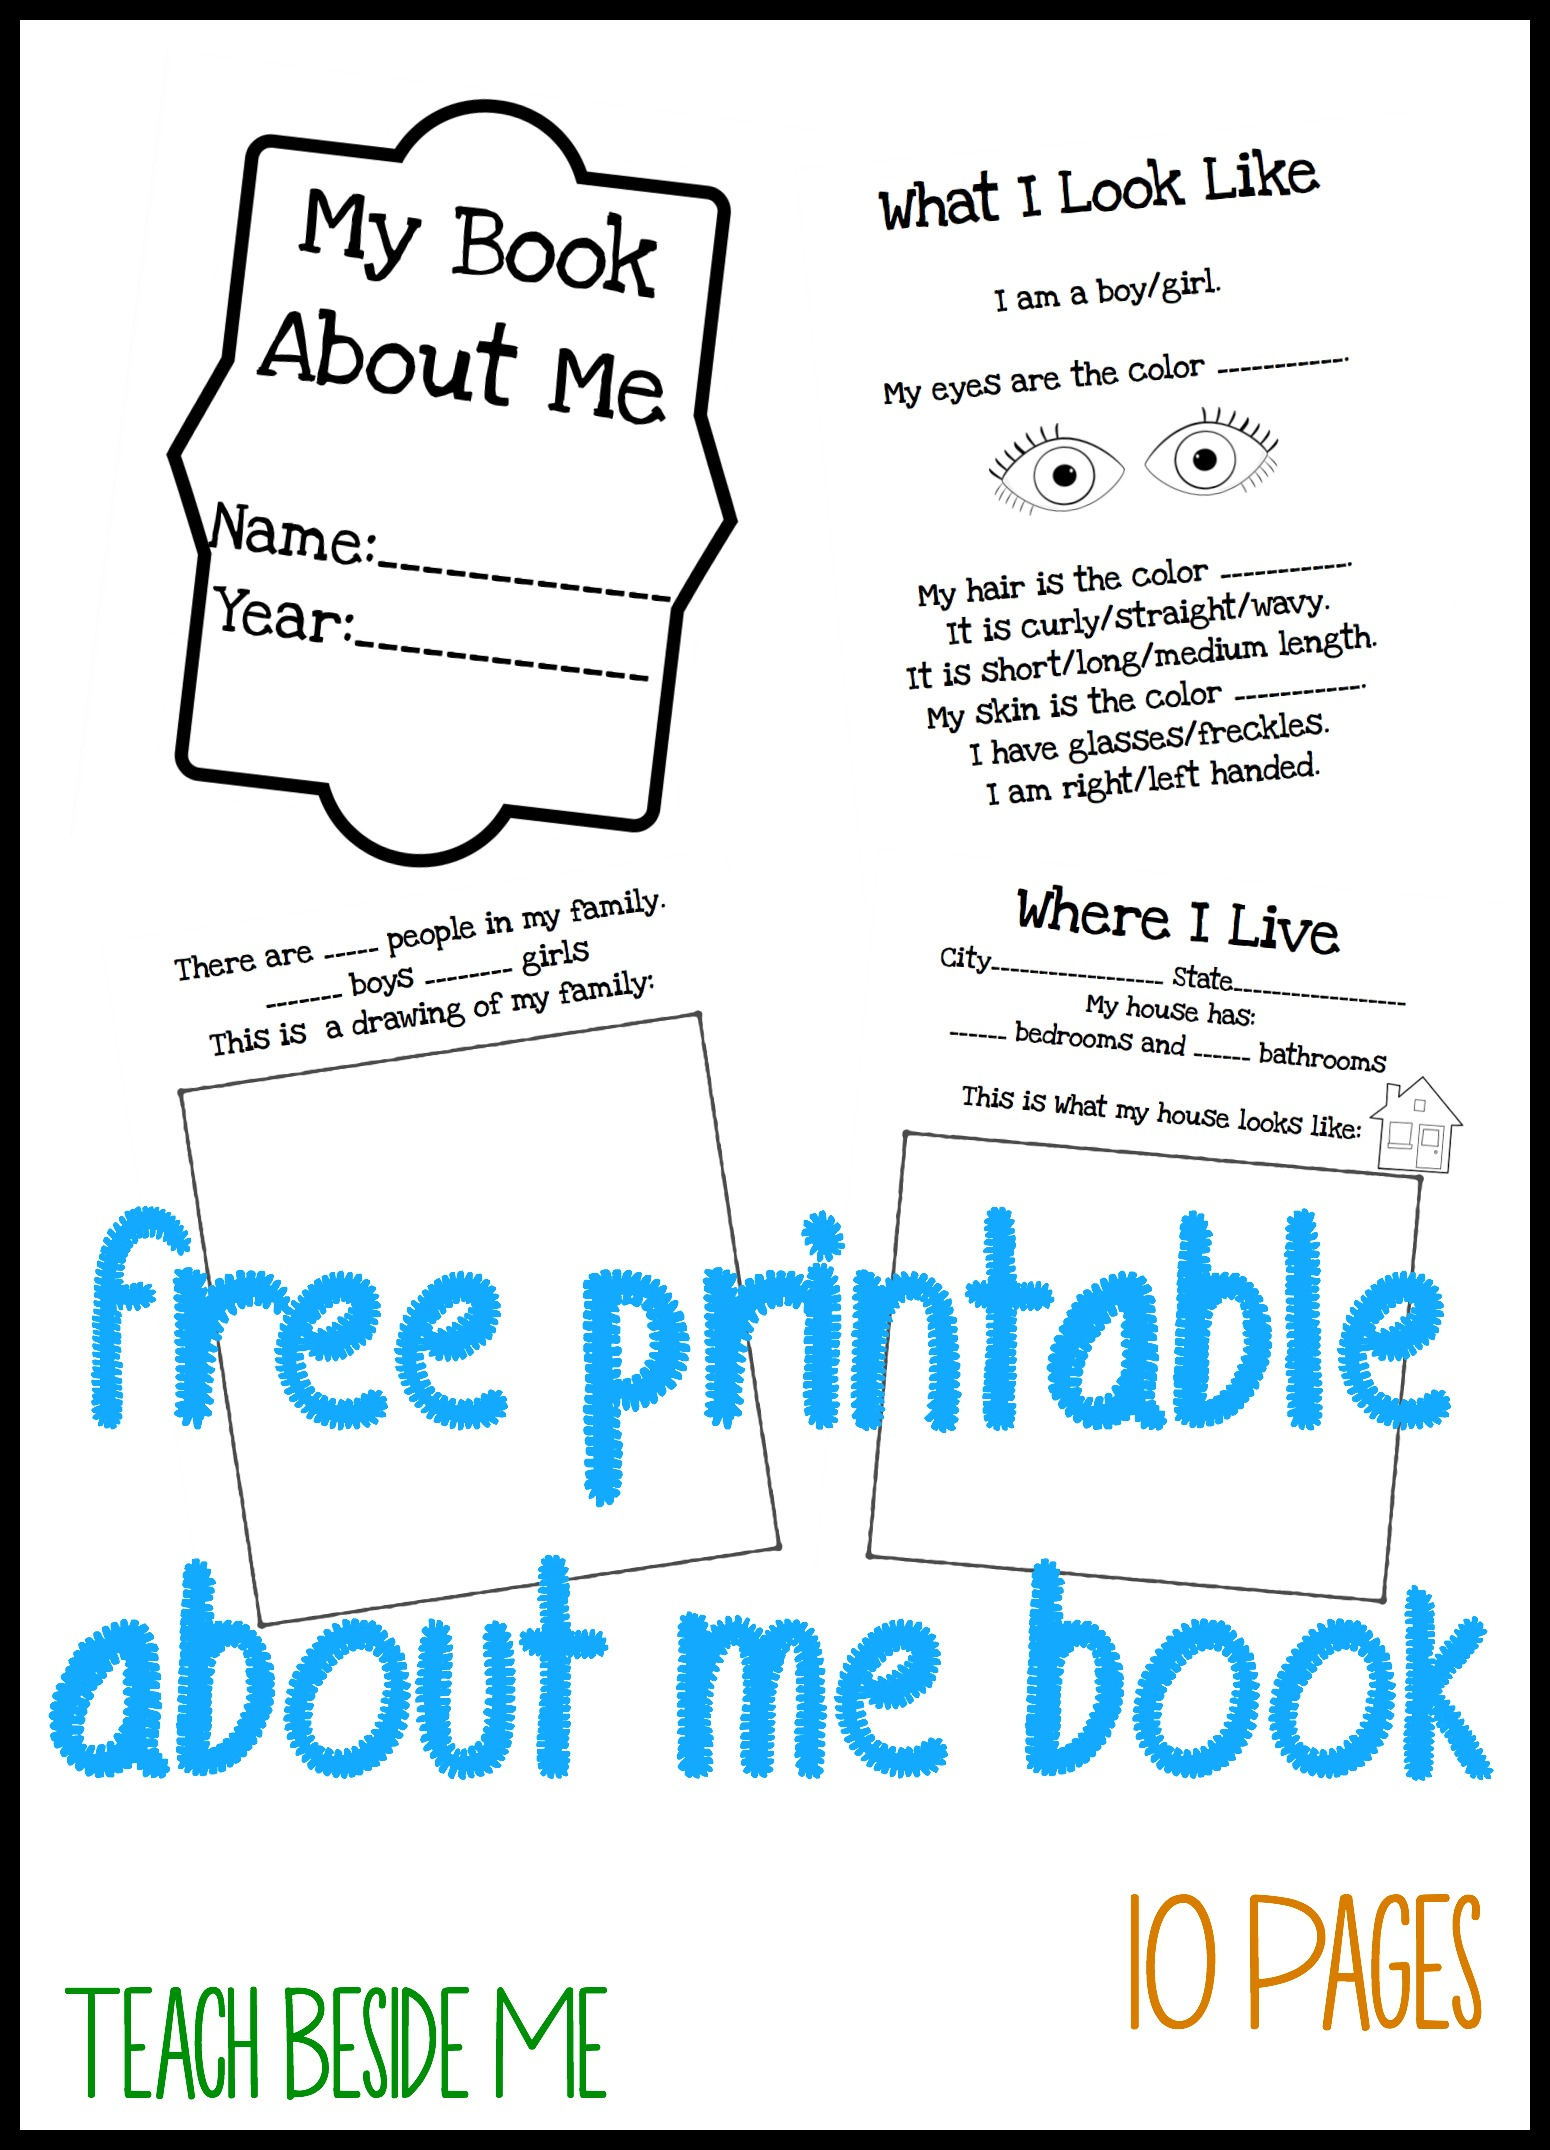 All About Me Book For Preschool Kids Teach Beside Me